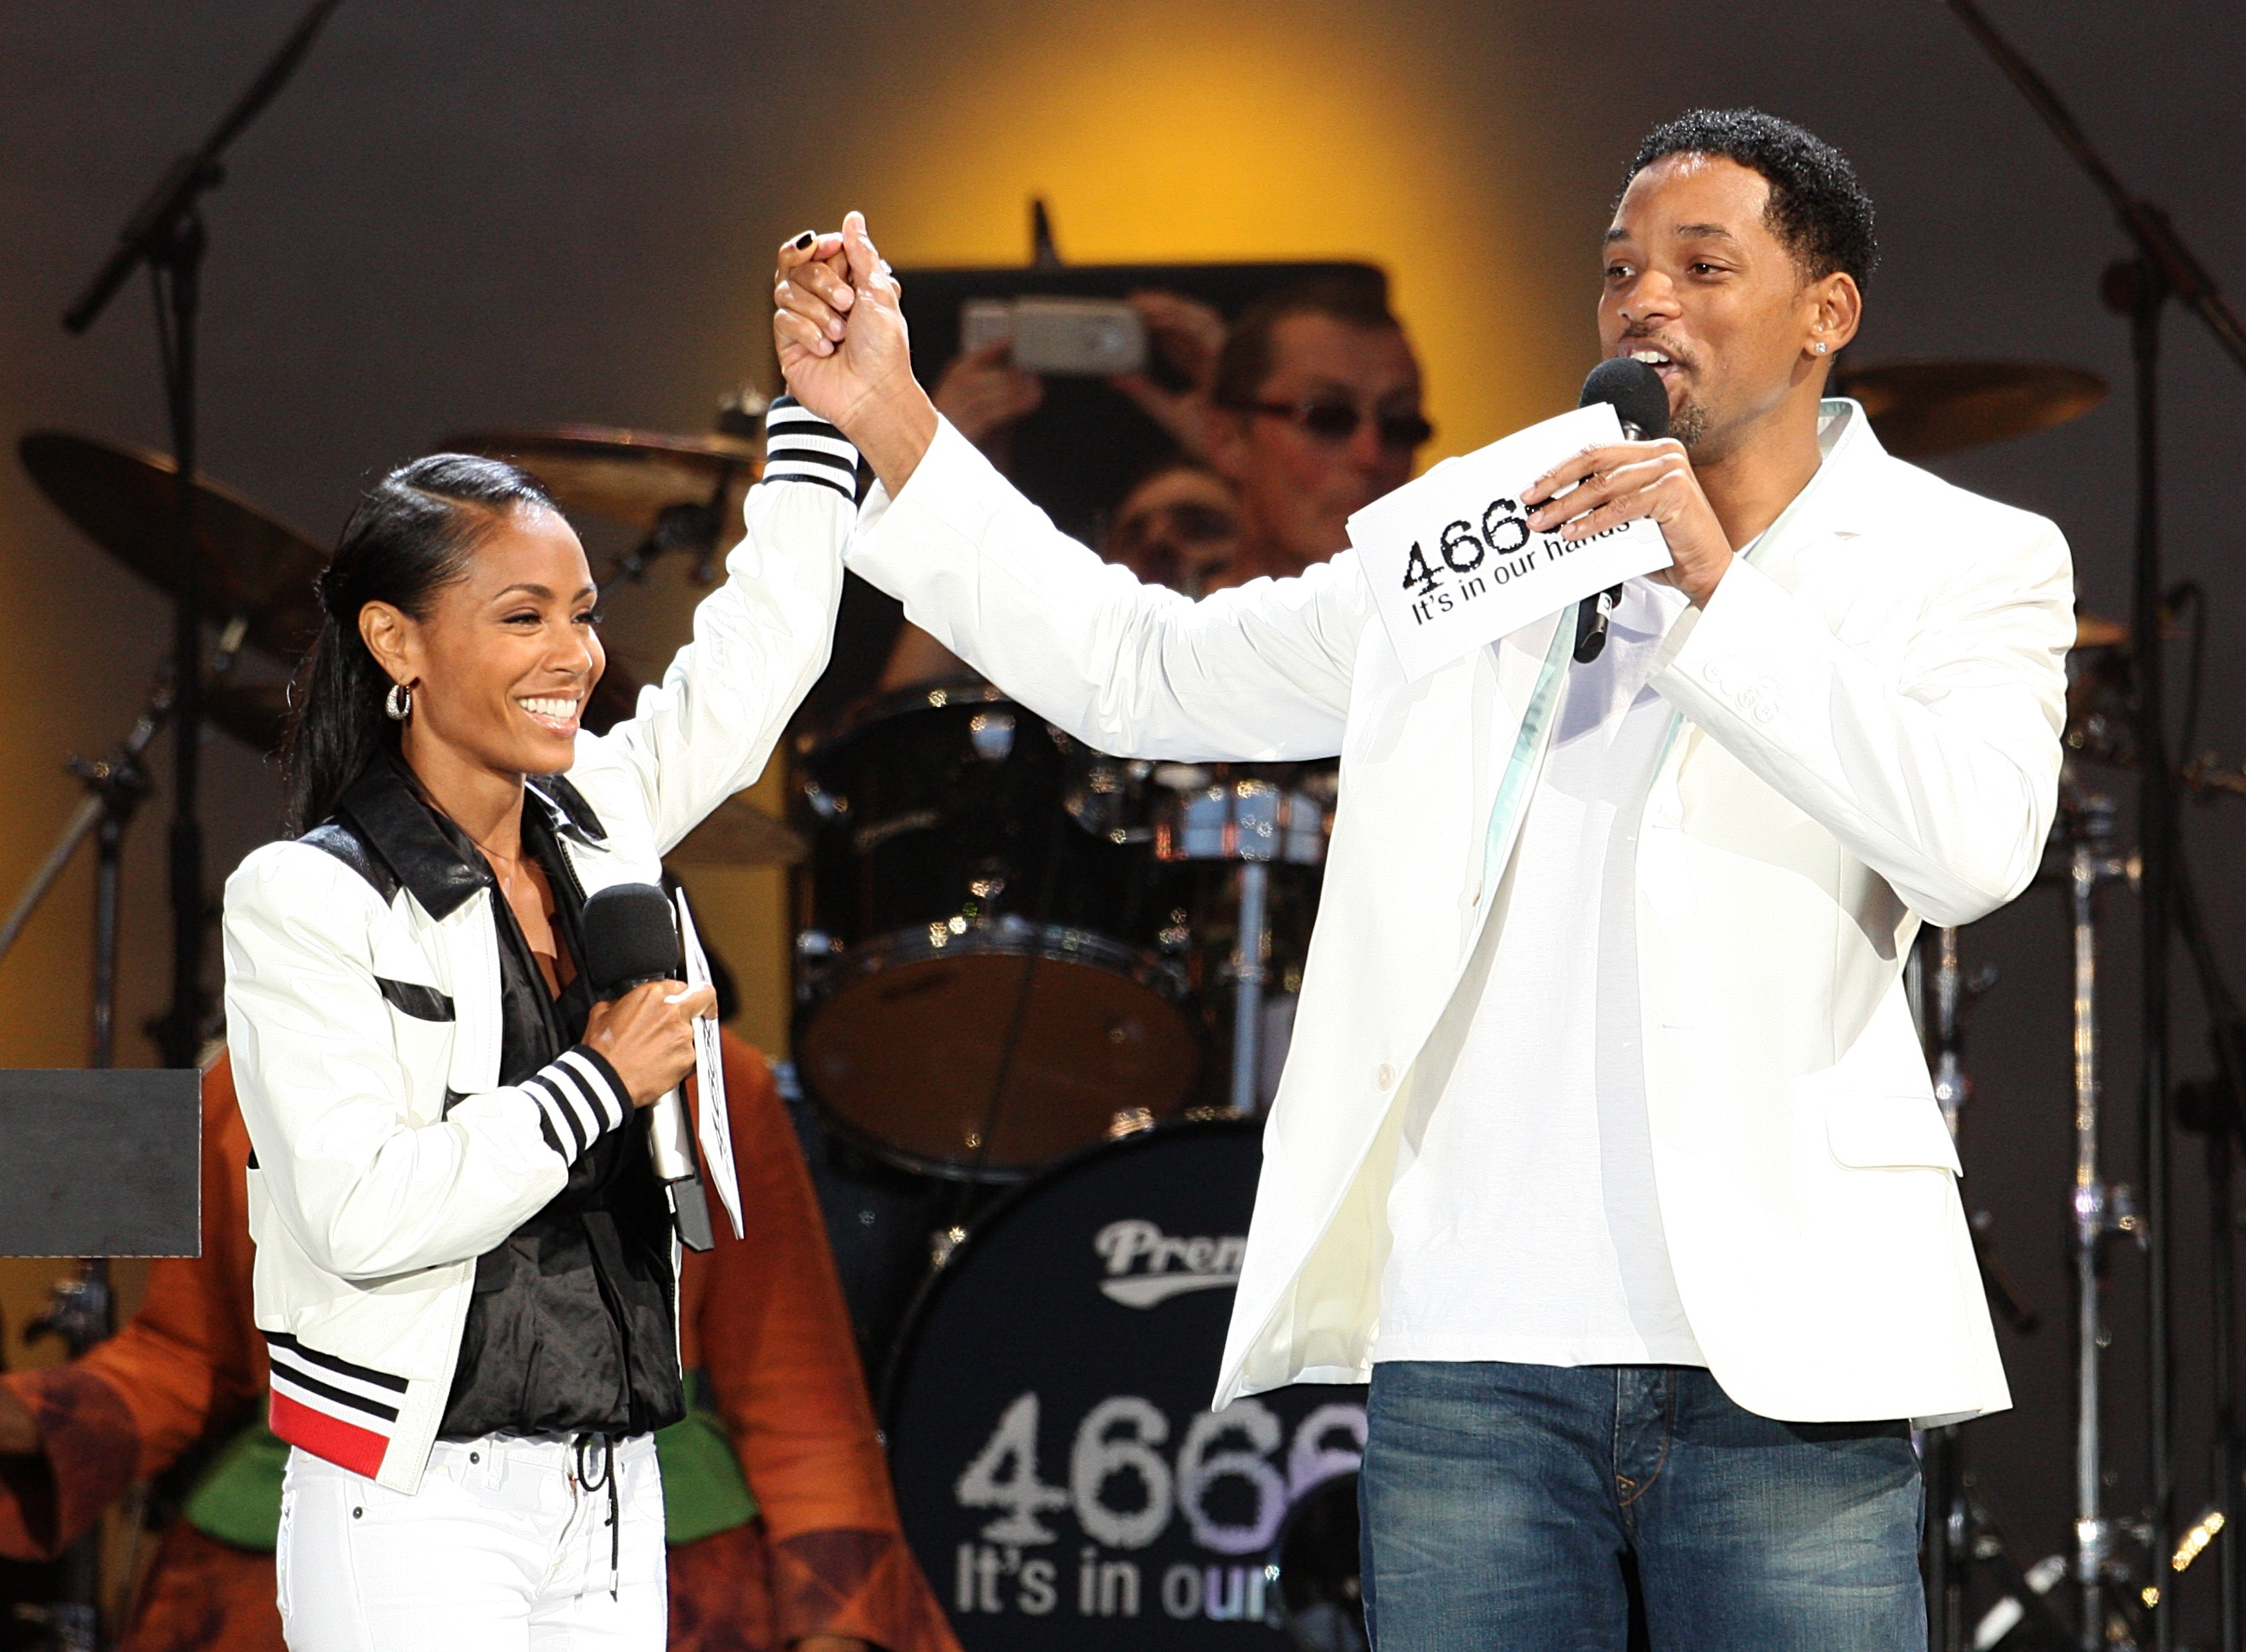 Will Smith and wife Jada Pinkett Smith on stage together